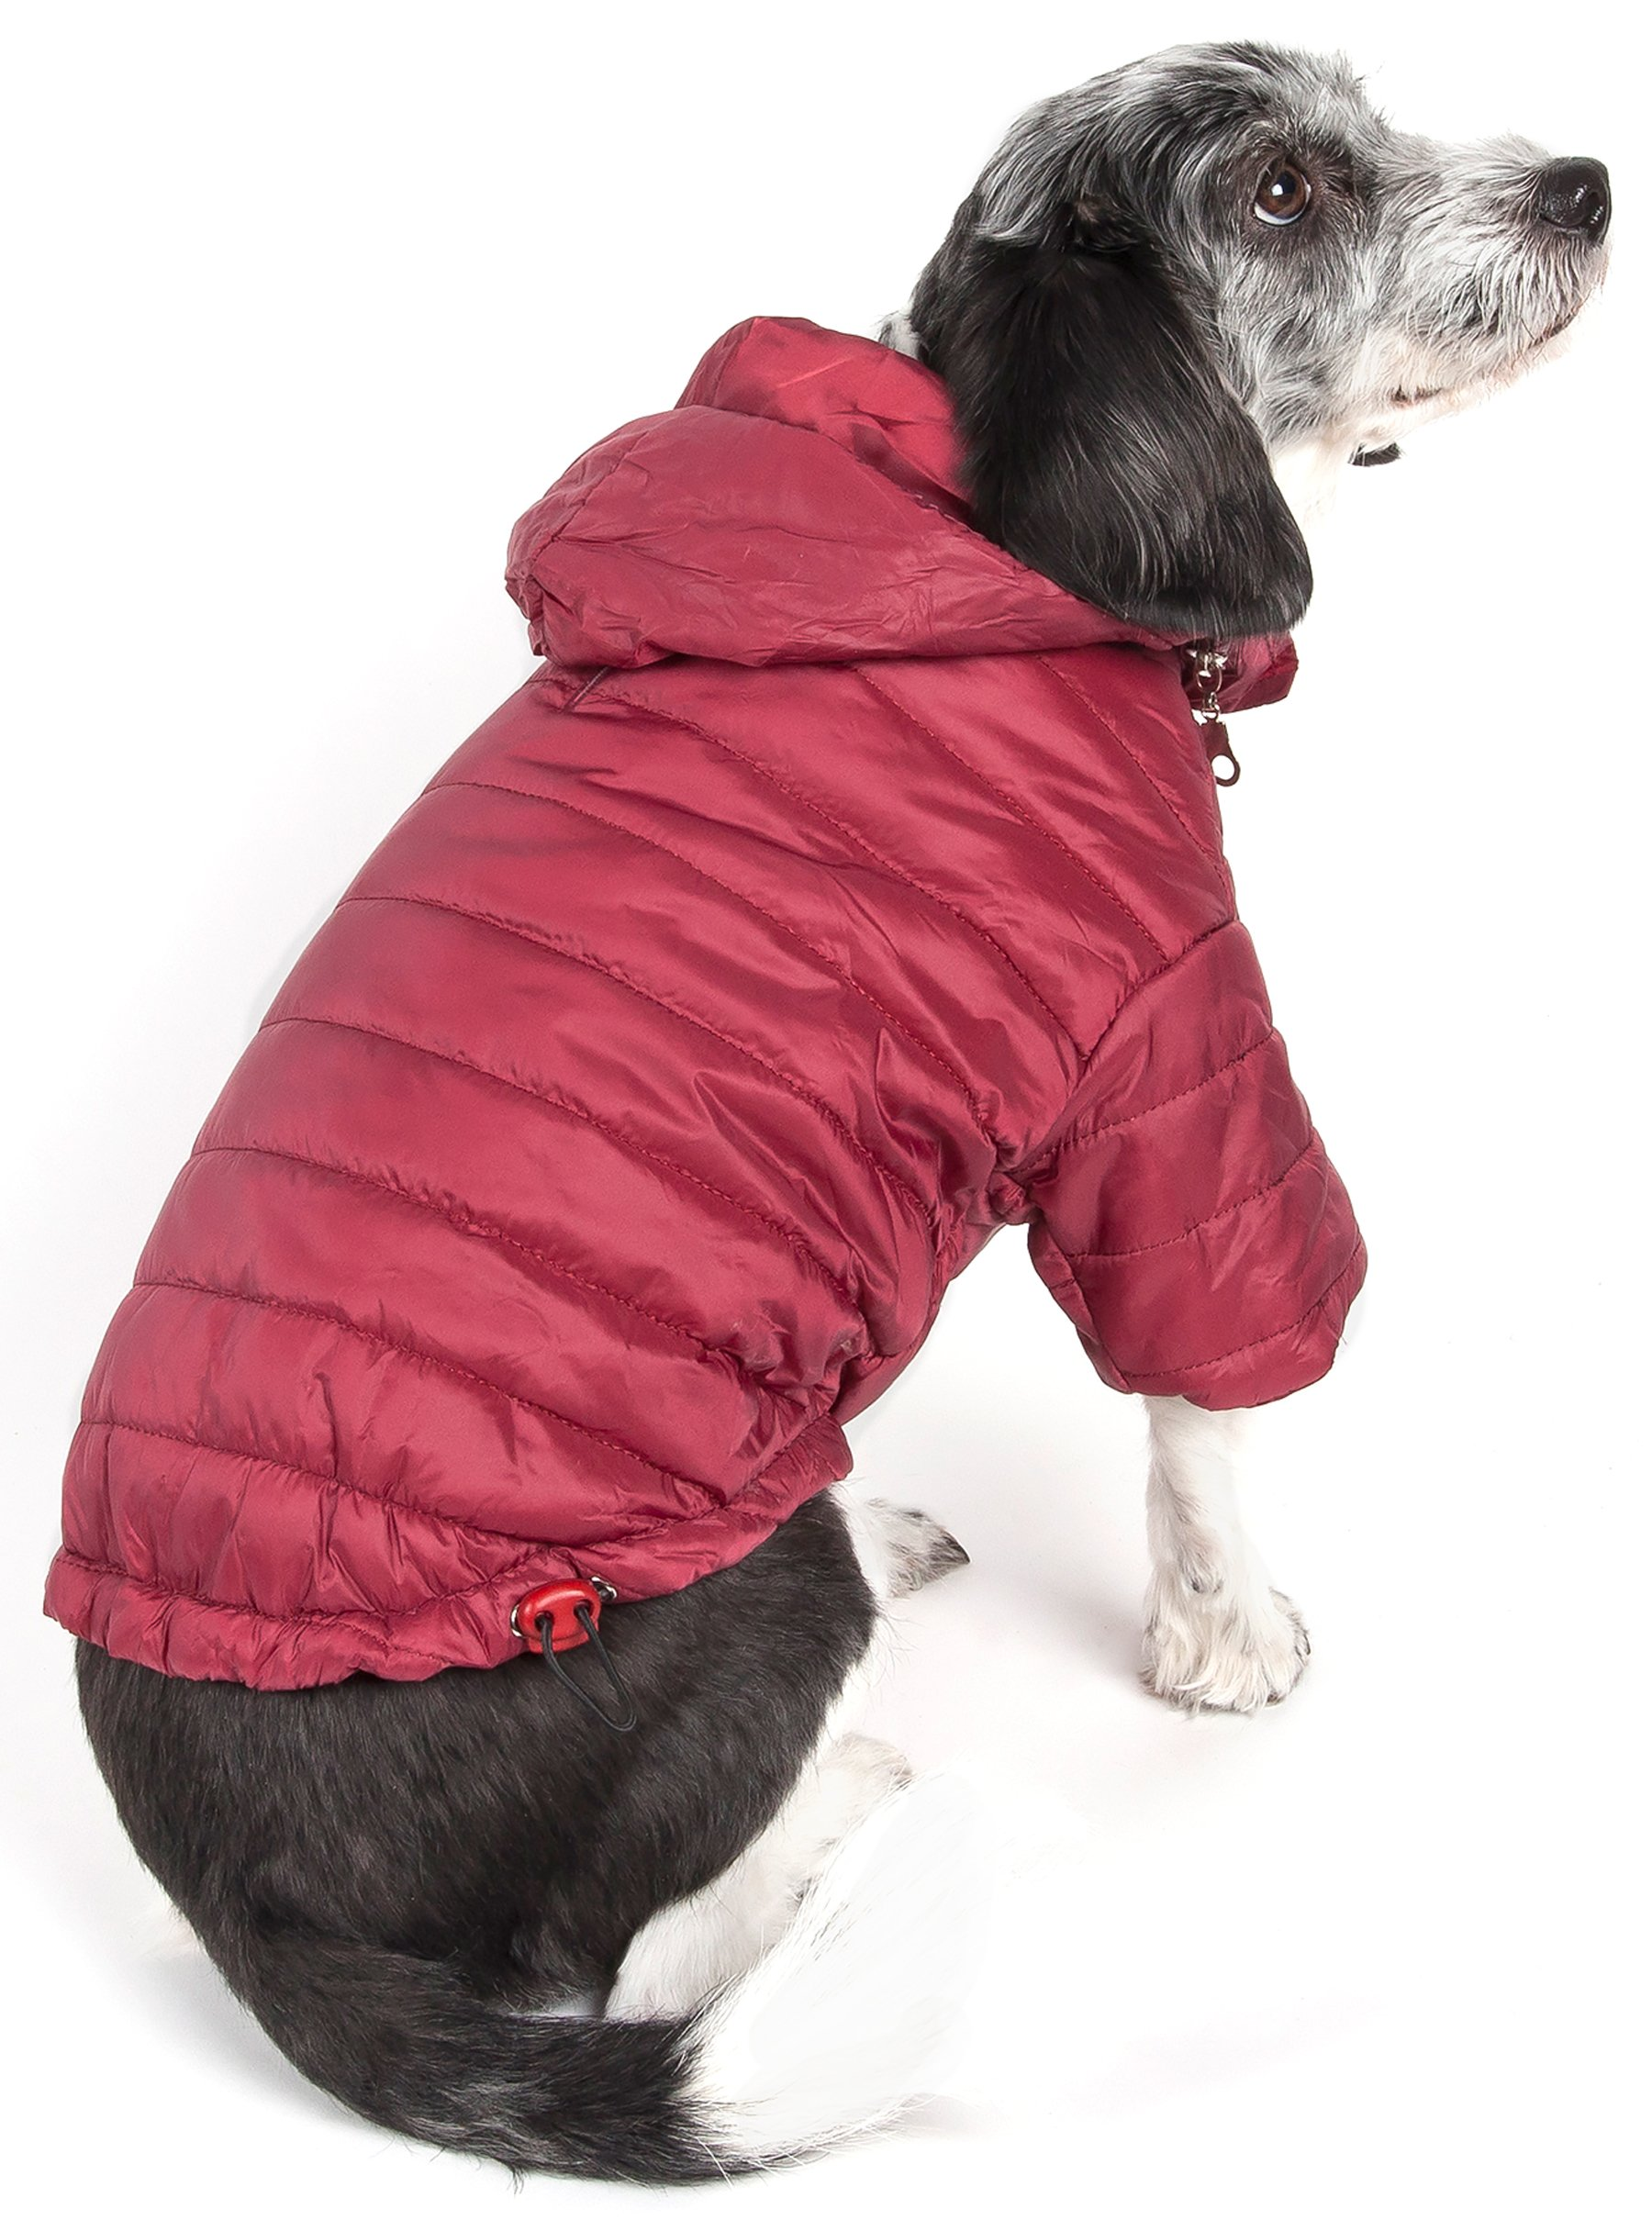 PET LIFE 'Sporty Avalanche' Lightweight and Adjustable Insulated Folding Travel Pet Dog Coat Jacket w/Built-in concealed hood, Large, Burgundy Red